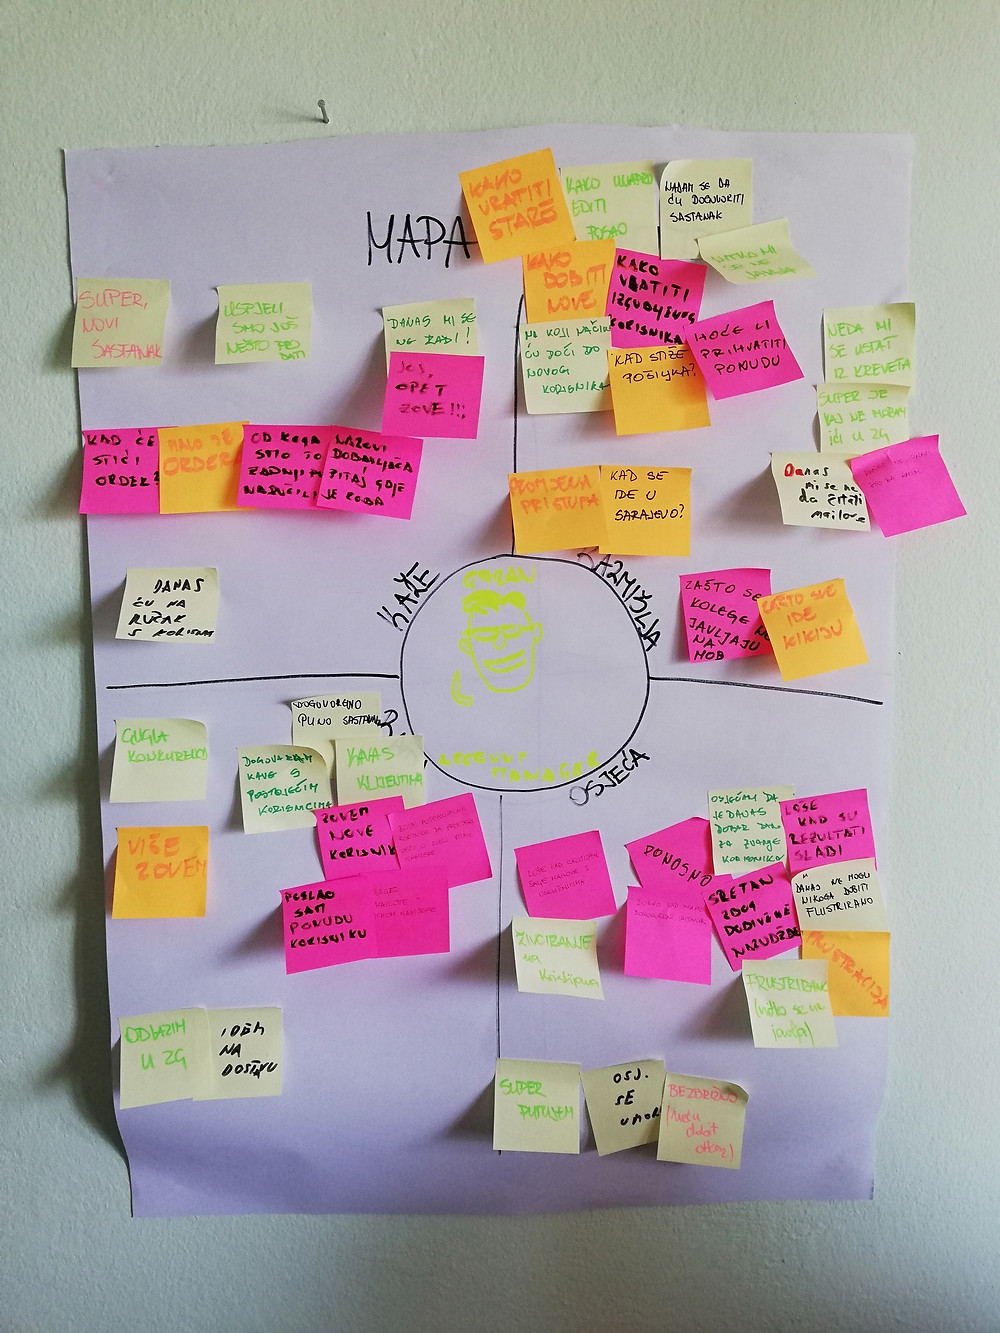 Empathy map help us to understand better our client and what are his/her motivation, pain points, habits etc.